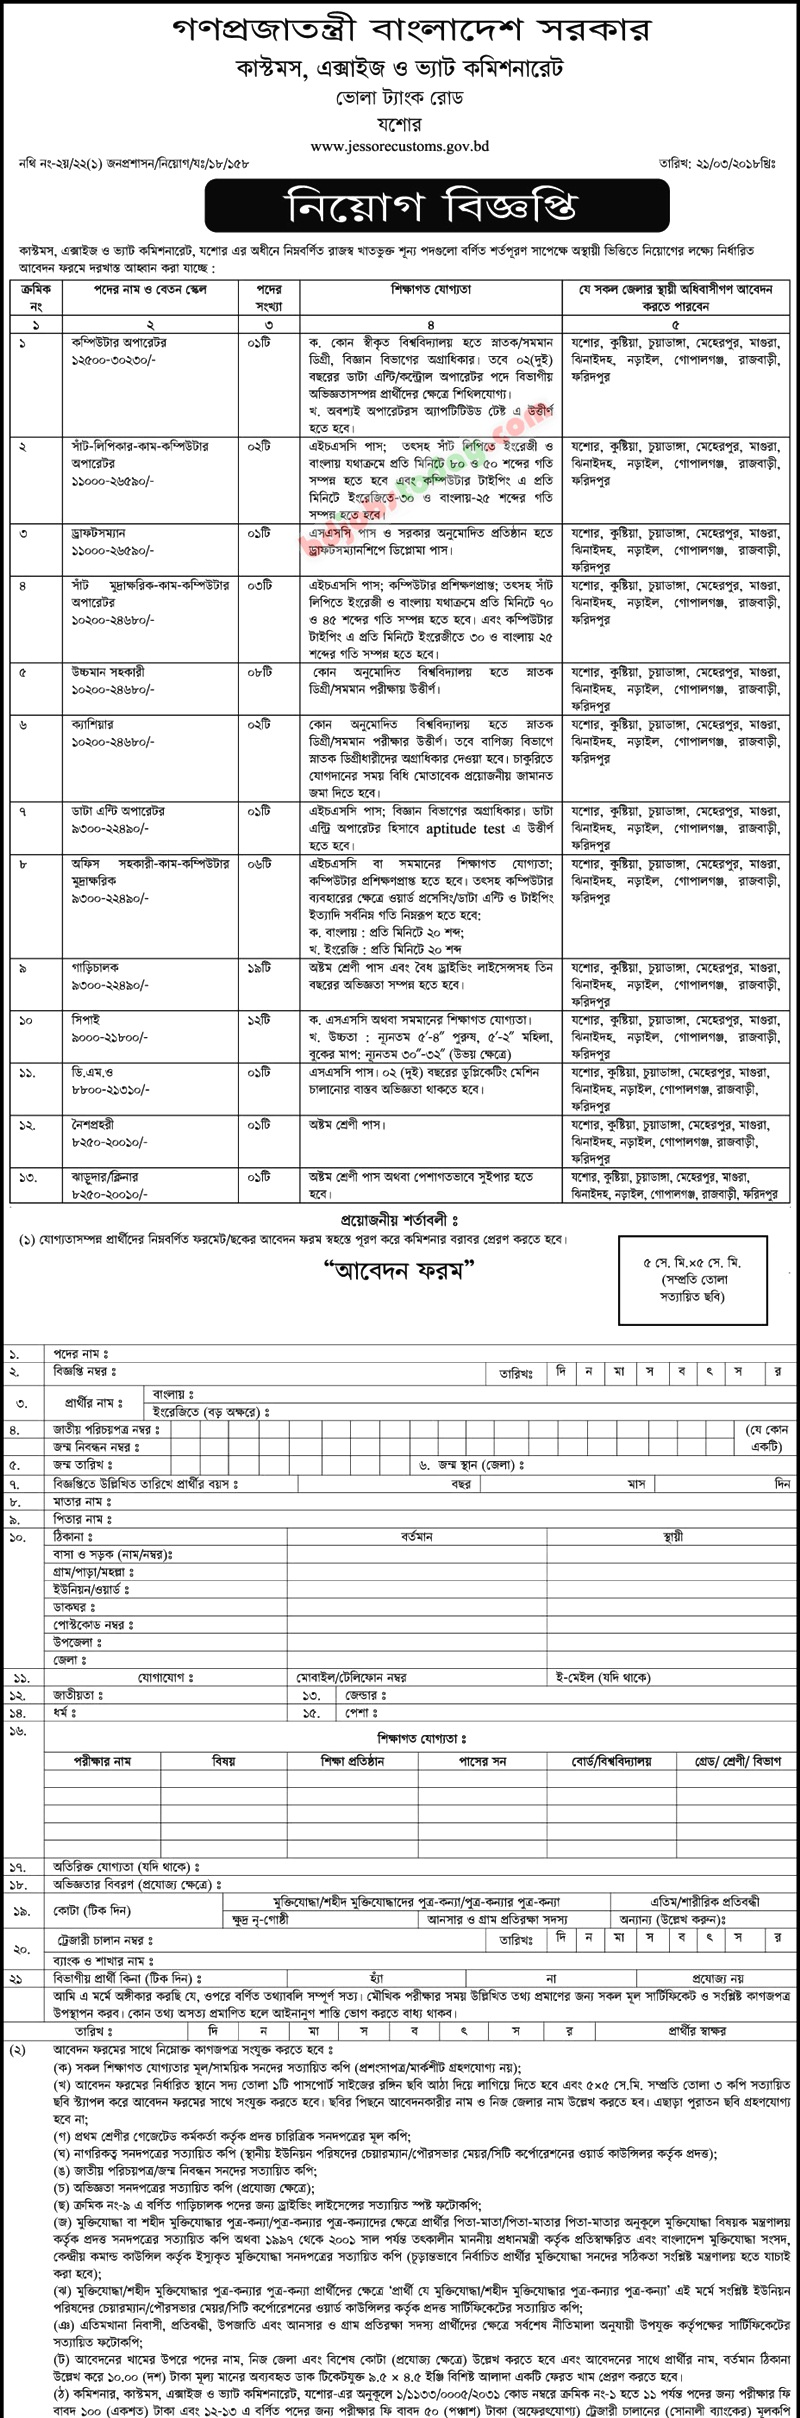 Customs, Excise & VAT Commissionerate jobs